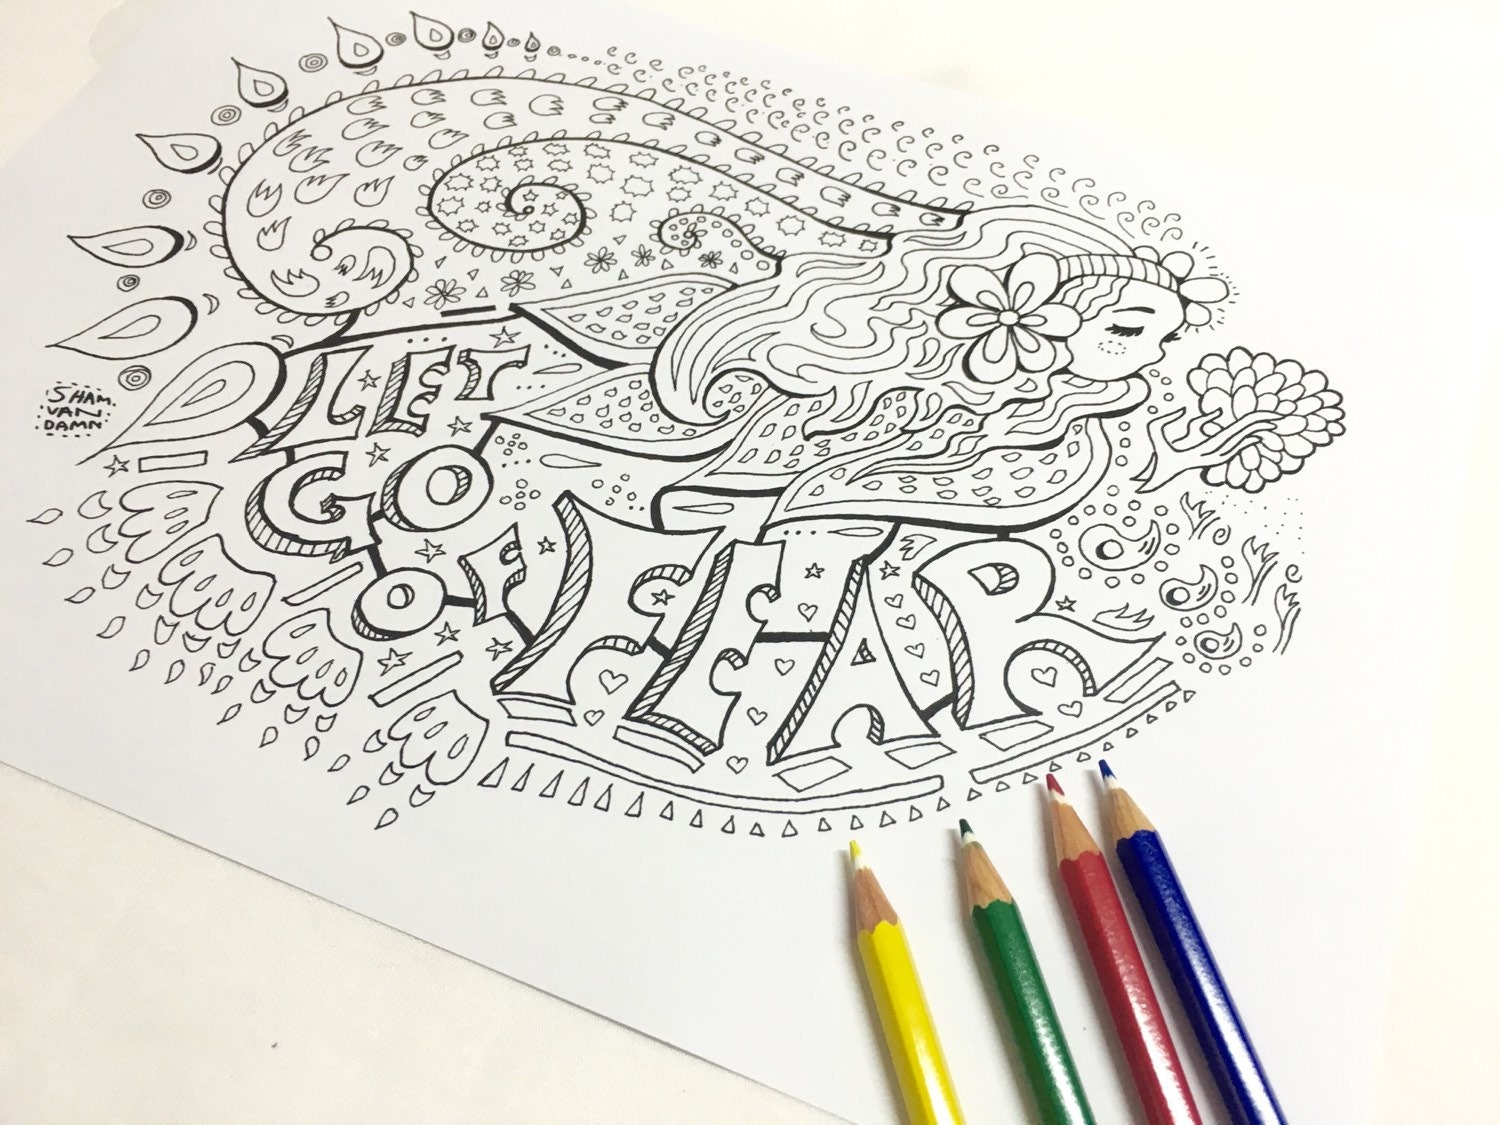 Let Go Of Fear Coloring Page Adult Art Therapy I Will No Evil Robert A Heinlein Book